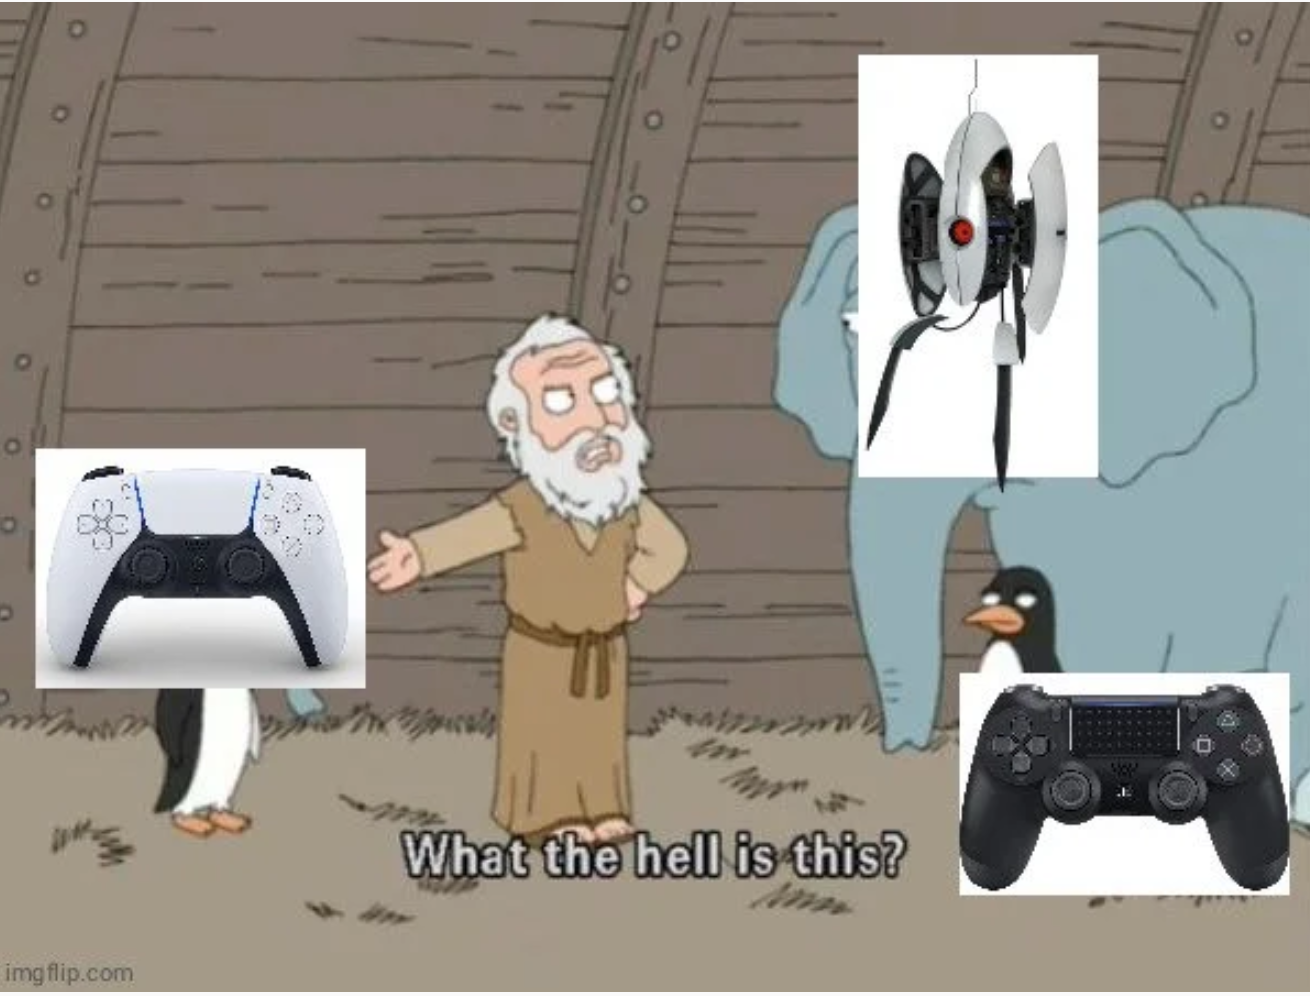 Best Playstation 5 Controller Memes From Around The Web In 2020 Memes Playstation Funny Games